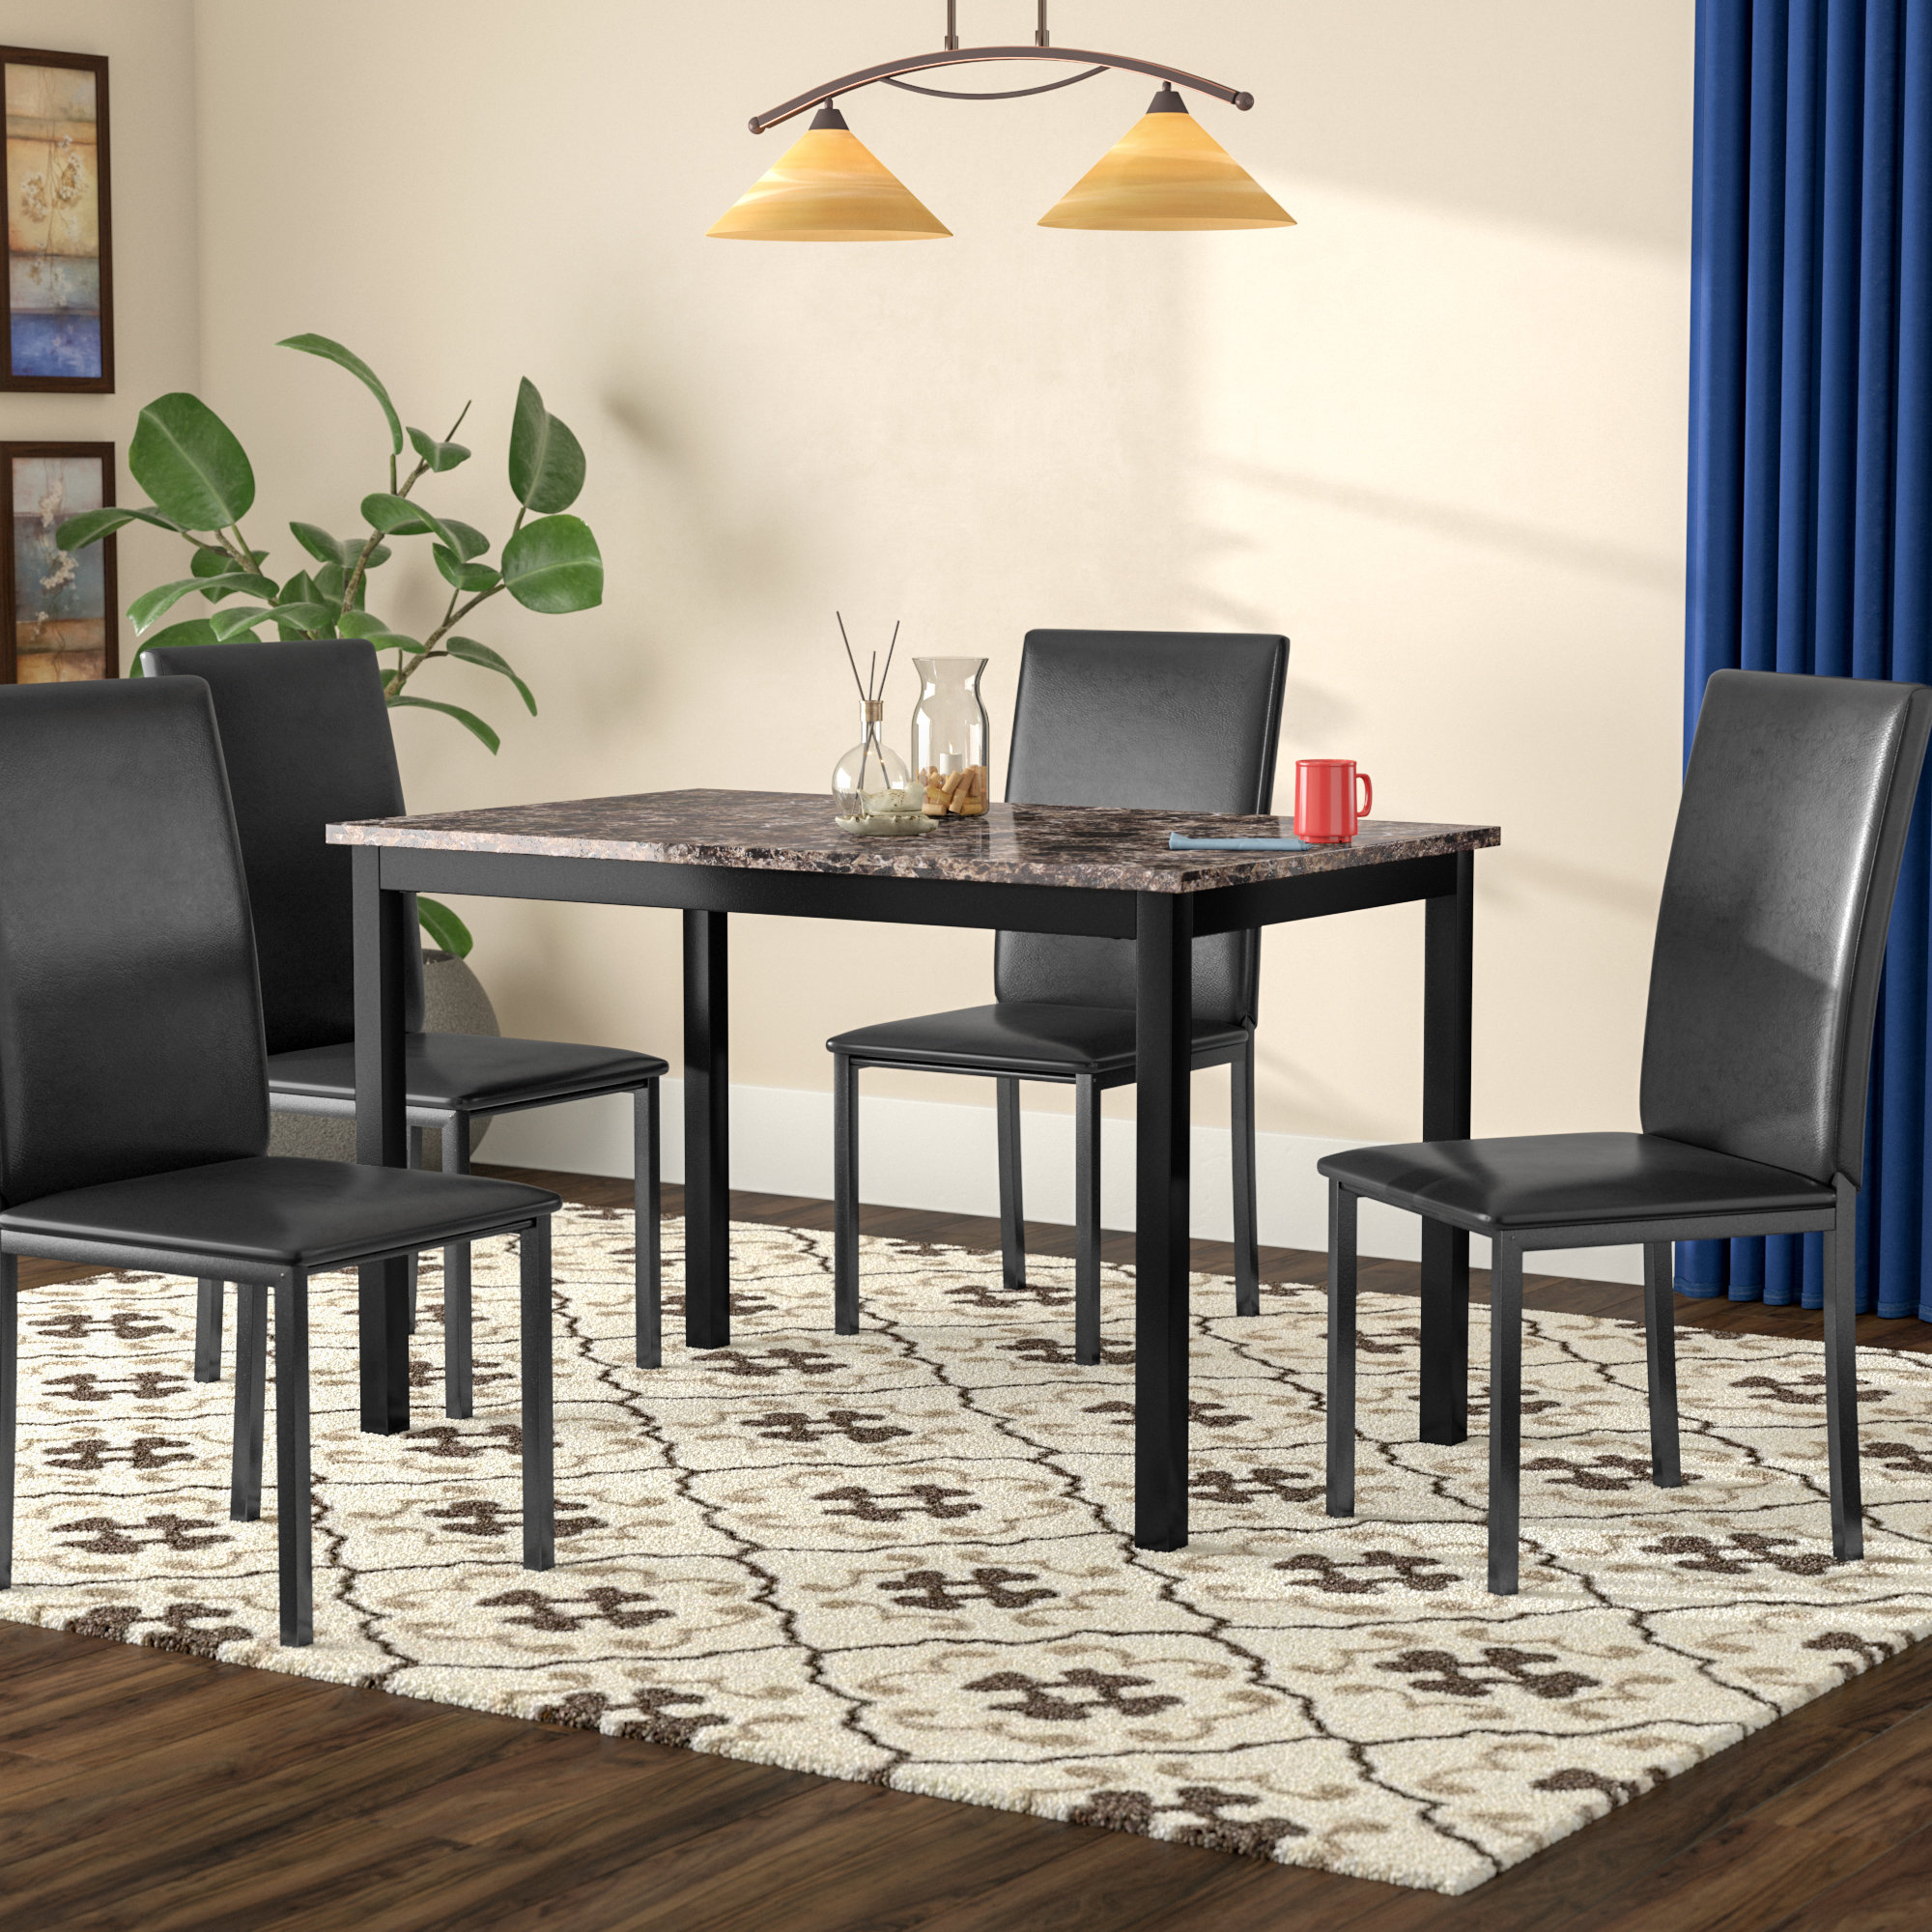 Wayfair Throughout Noyes 5 Piece Dining Sets (View 2 of 25)